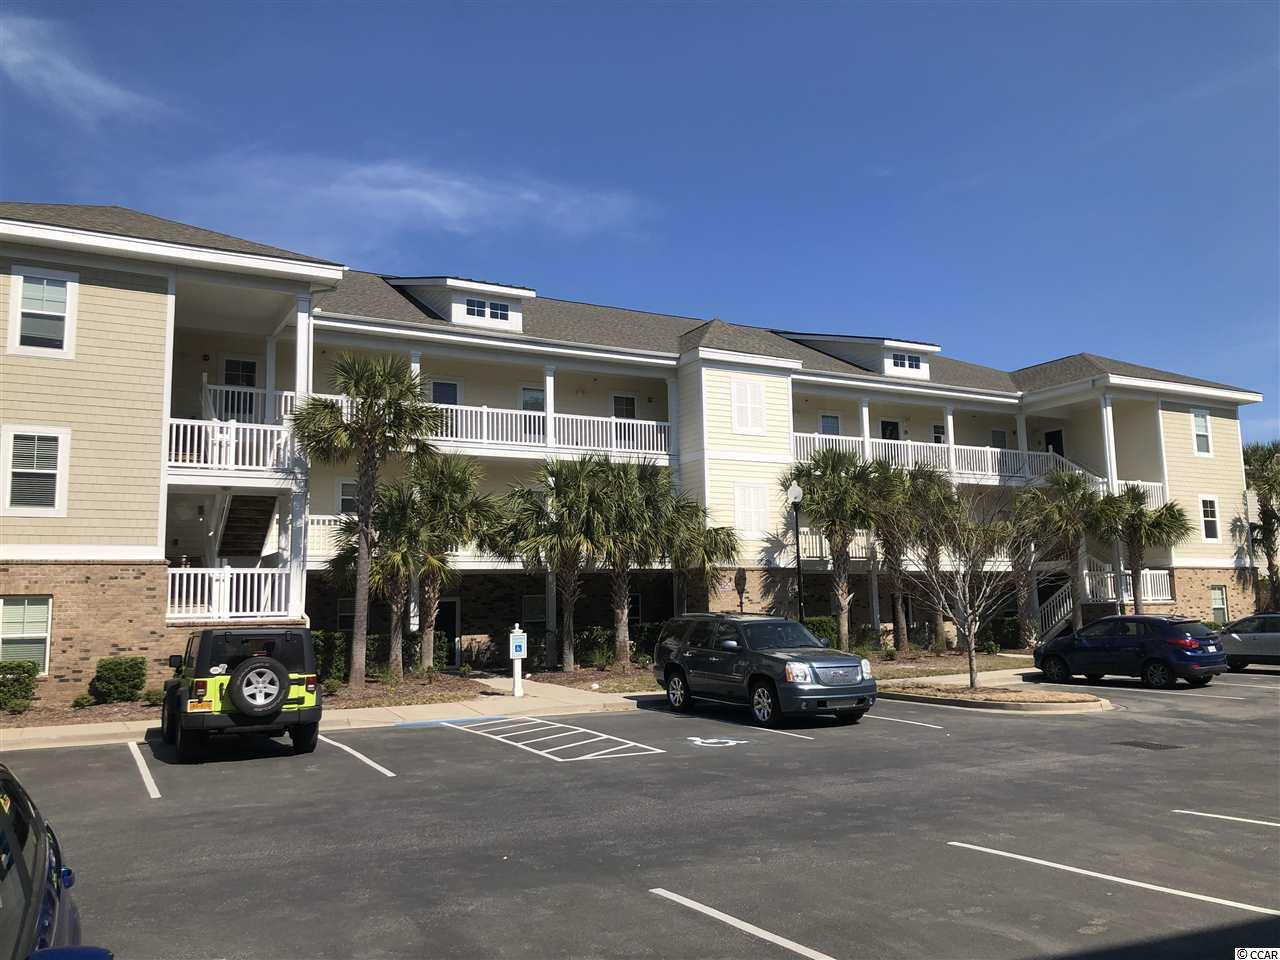 Transferable membership for a transfer fee. Come see this move-in ready 3 bd/2 bath, end unit condo in the sought after community of Willow Bend. This condo has only been used a few times a year as a second home and never rented.This unit is being sold partially furnished. Brand new water heater in 2019. Barefoot Resort is just minutes away from the ocean and allows owners access to the private beach cabana with private parking and bathrooms. Barefoot also offers a 15,000 sq ft saltwater pool with views of the inter-coastal waterway, 4 championship golf courses, walking trails and on-site restaurants. Square foot is approximate and should be confirmed by buyer.